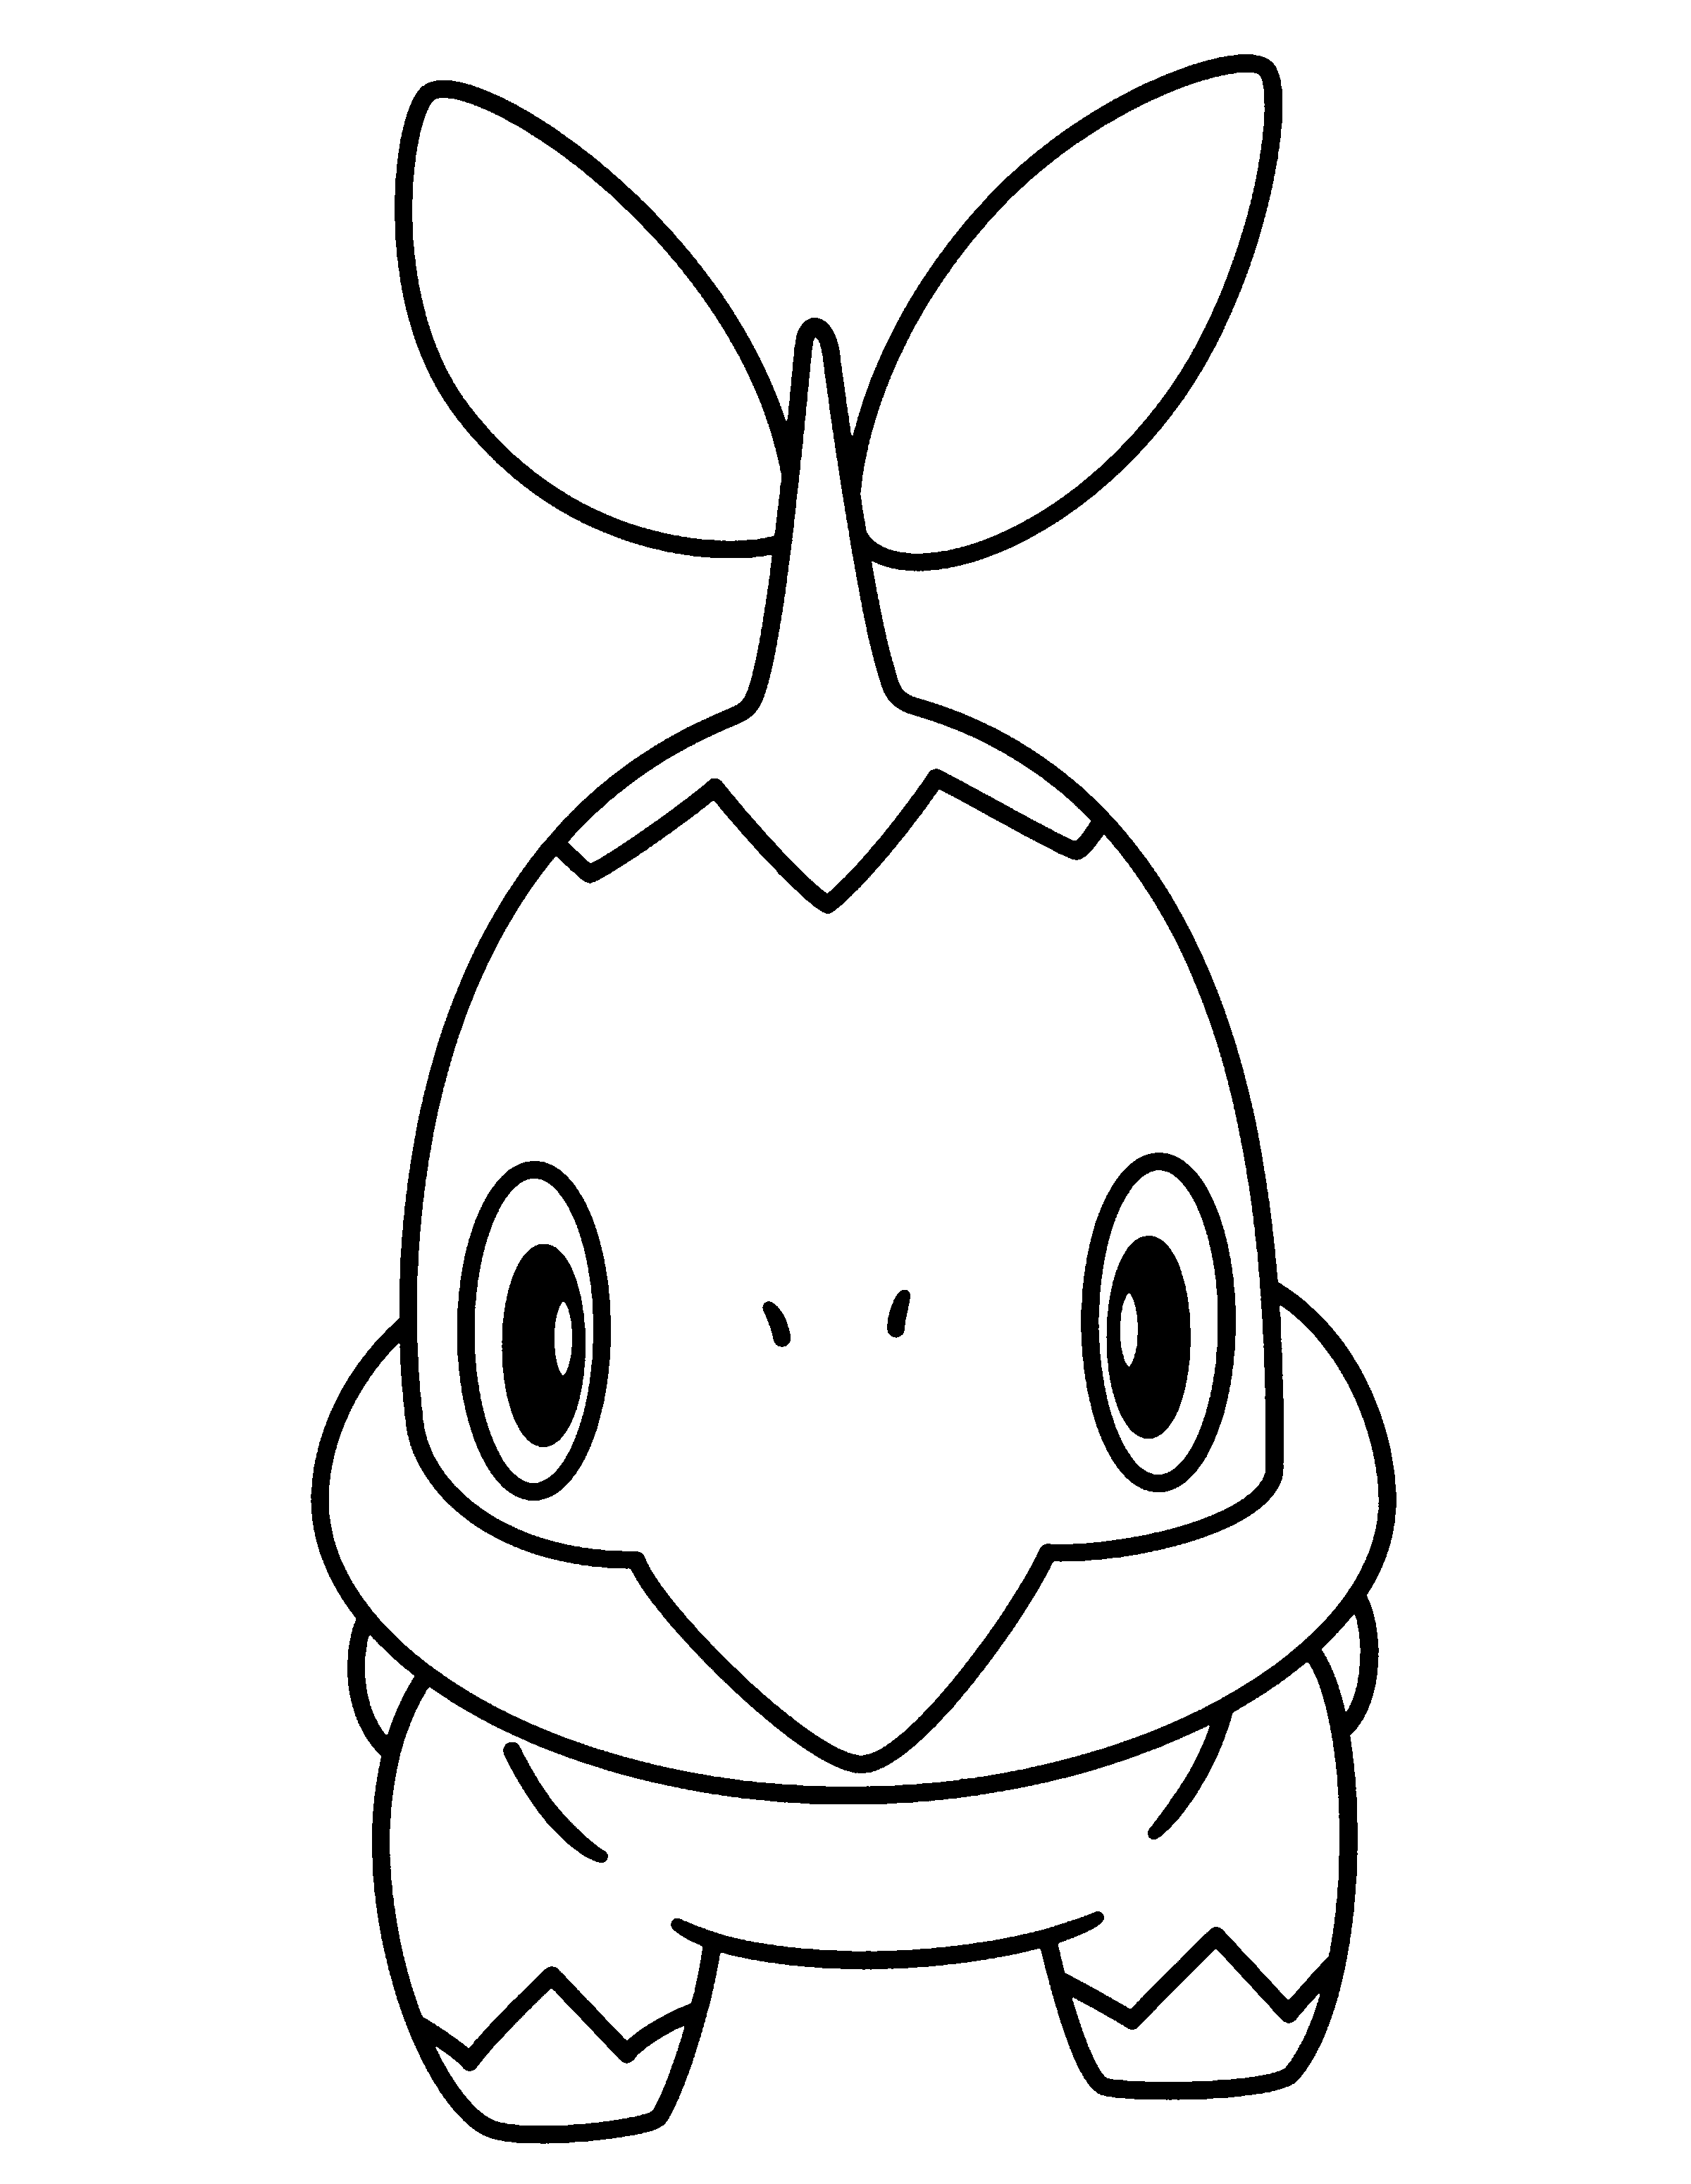 chimecho coloring pages - photo#31